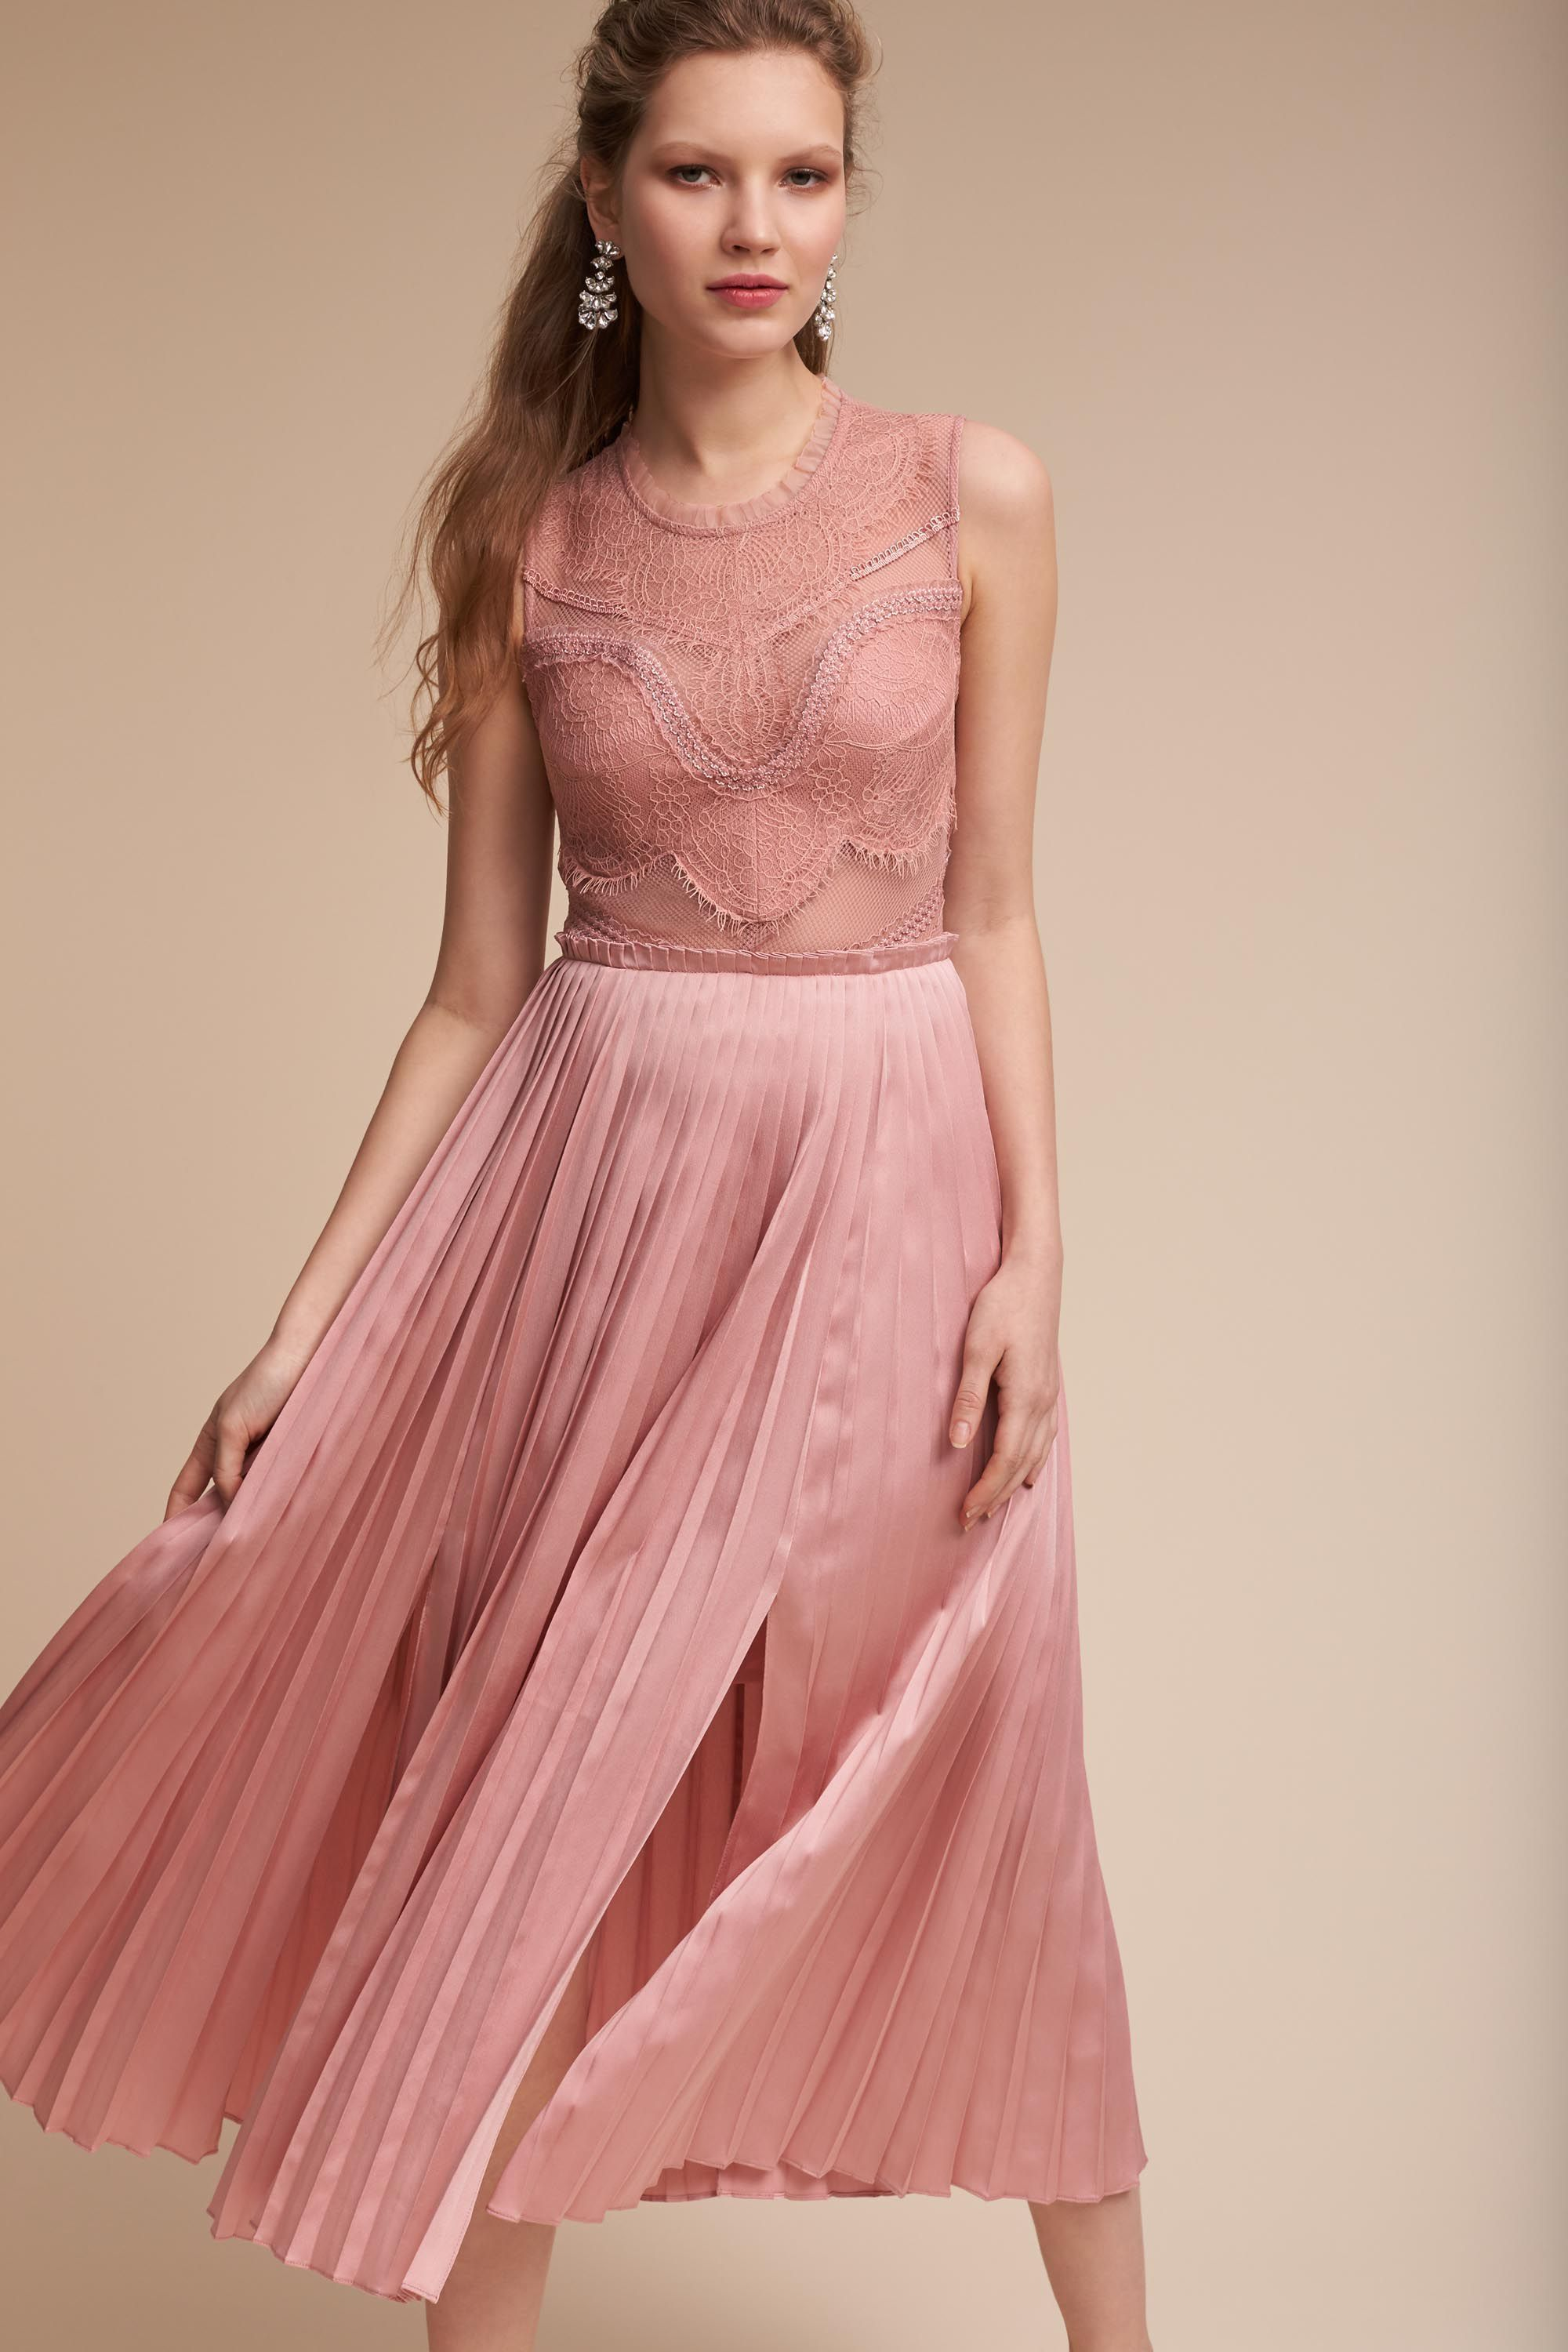 Pop of Peony Dress from @BHLDN | Gilded Age | Pinterest